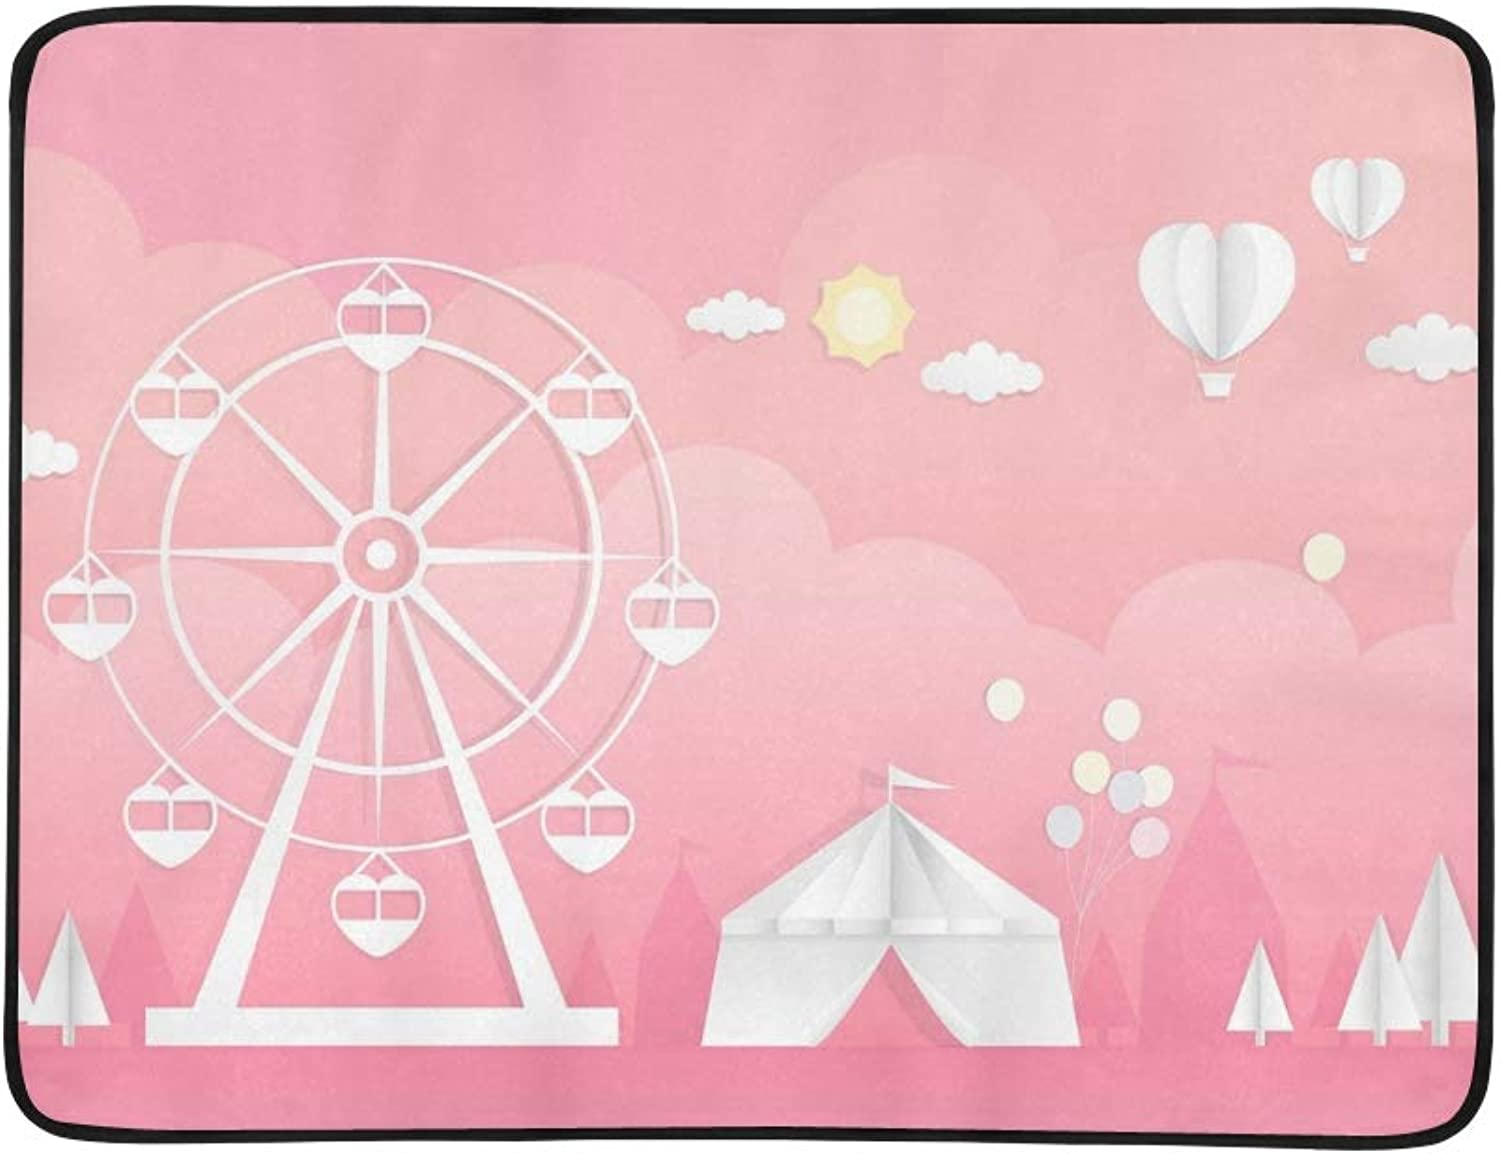 Paper Cutting Ferris Wheel Tent Amusement Portable and Foldable Blanket Mat 60x78 Inch Handy Mat for Camping Picnic Beach Indoor Outdoor Travel